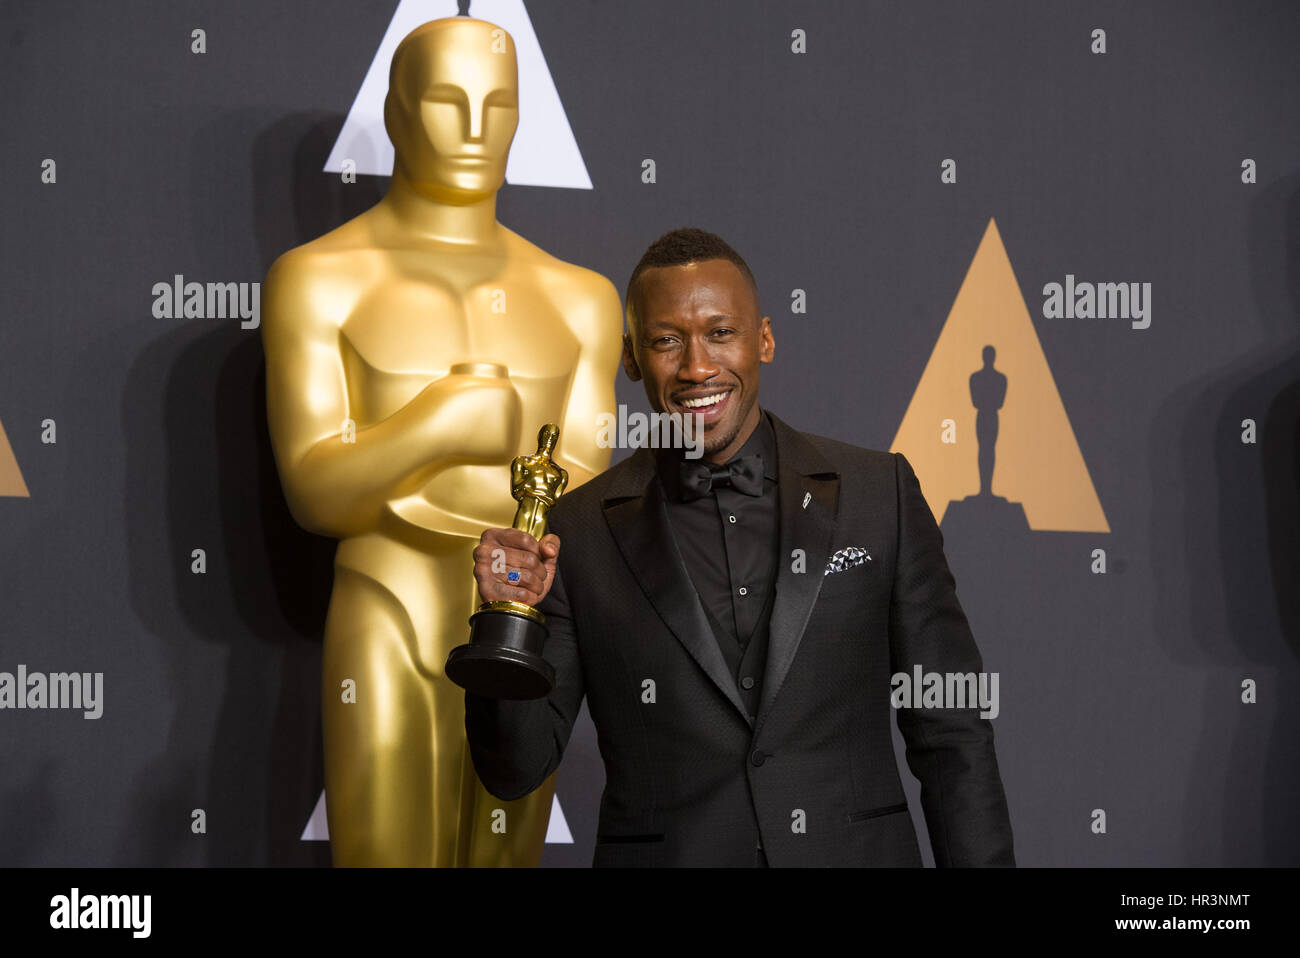 Los Angeles, USA. 26th Feb, 2017. Actor Mahershala Ali poses after wining the Best Supporting Actor for his role - Stock Image